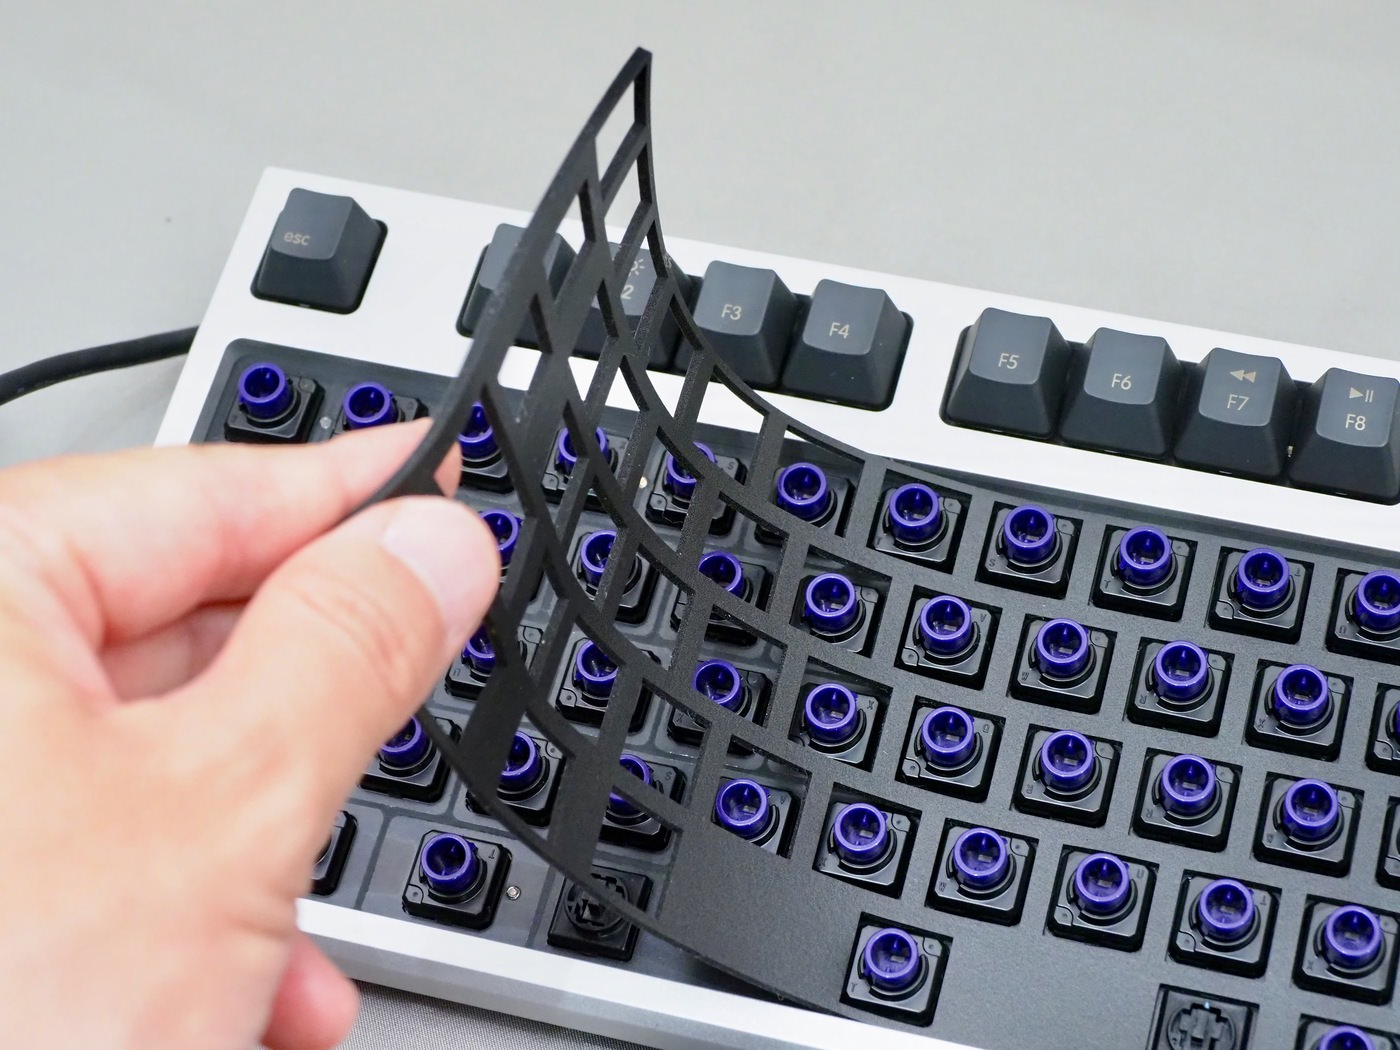 realforce-tkl-for-mac-pfu-limited-edition-review_00037-1